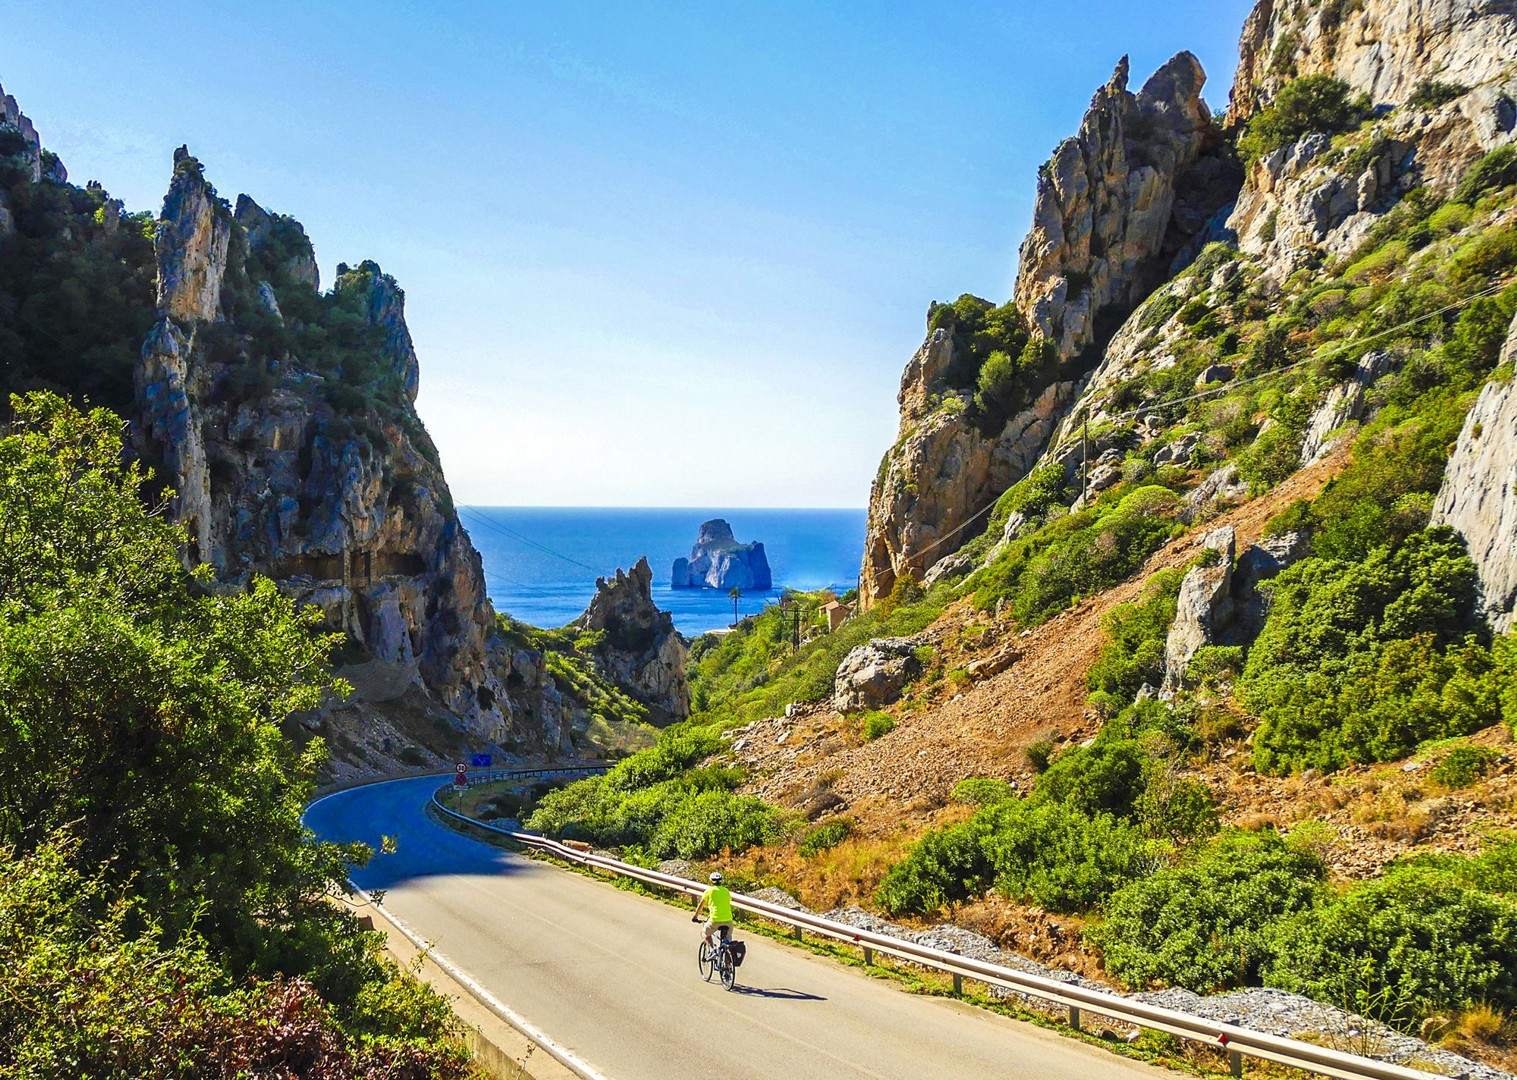 saddle-skedaddle-sardinia-island-flavours-italy-holiday-cycling.jpg - Italy - Sardinia - Island Flavours - Guided Leisure Cycling Holiday - Italia Leisure and Family Cycling